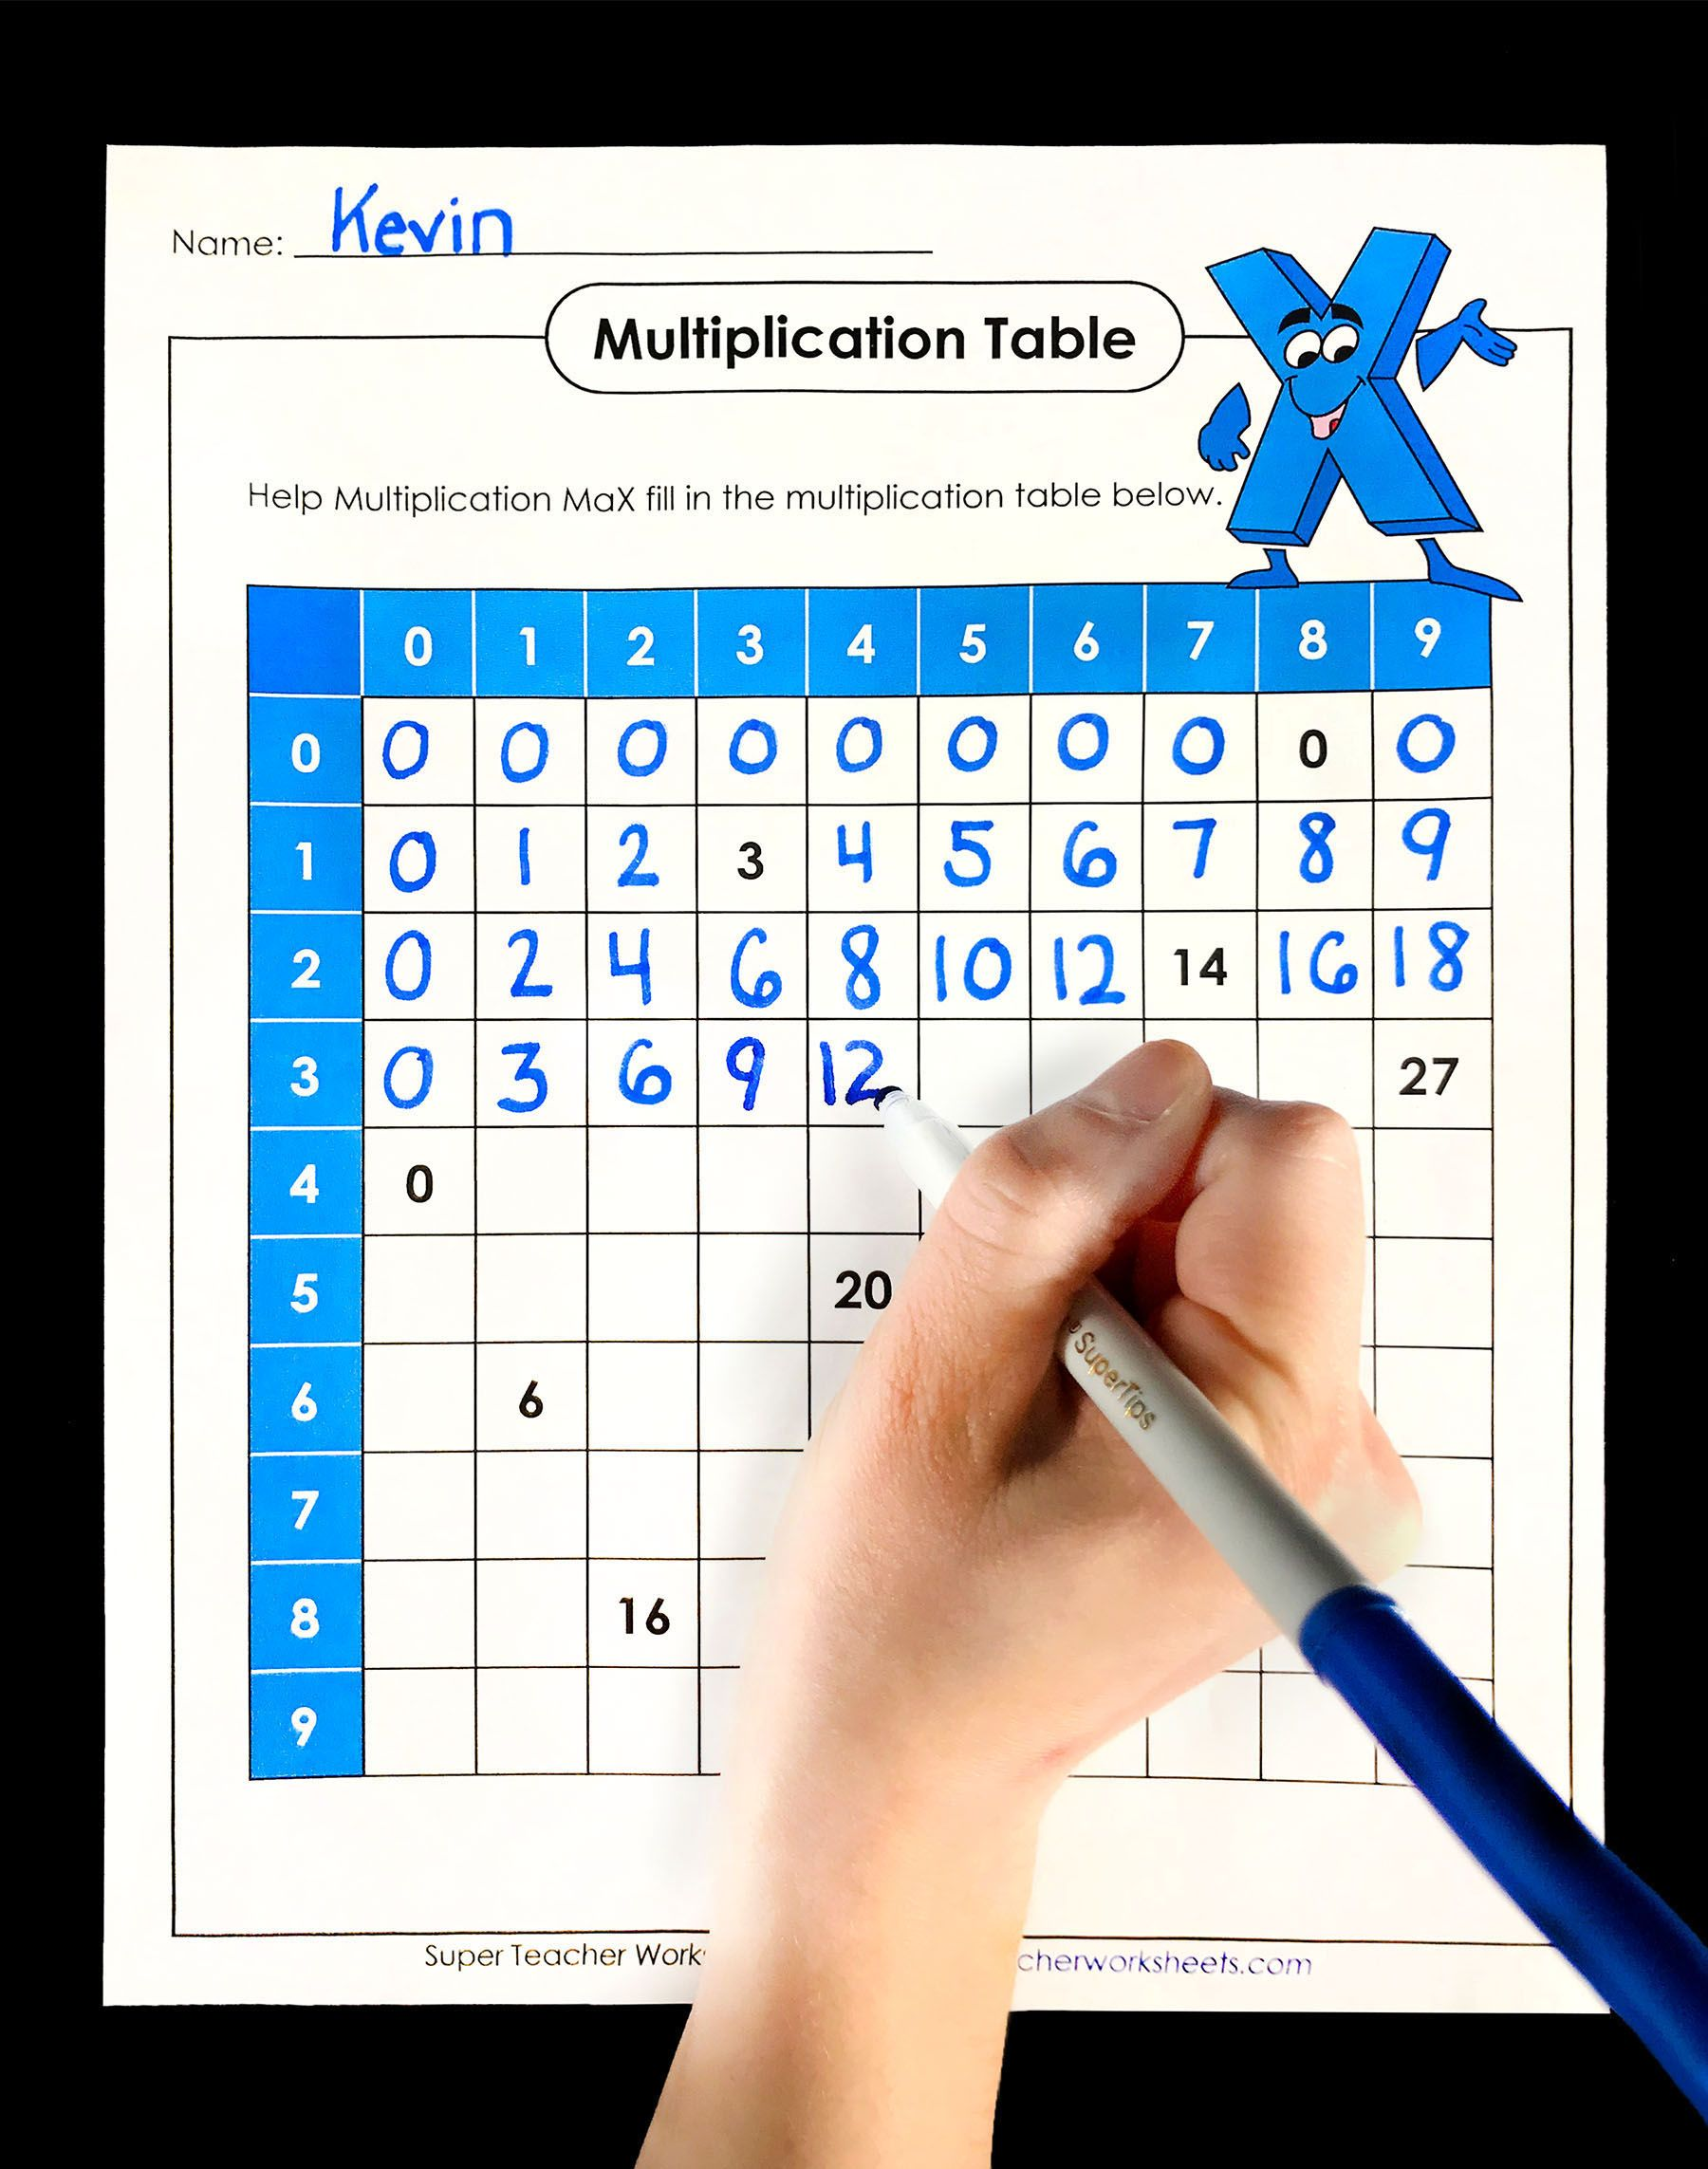 Can Your Students Help Multiplication Max Fill Out His